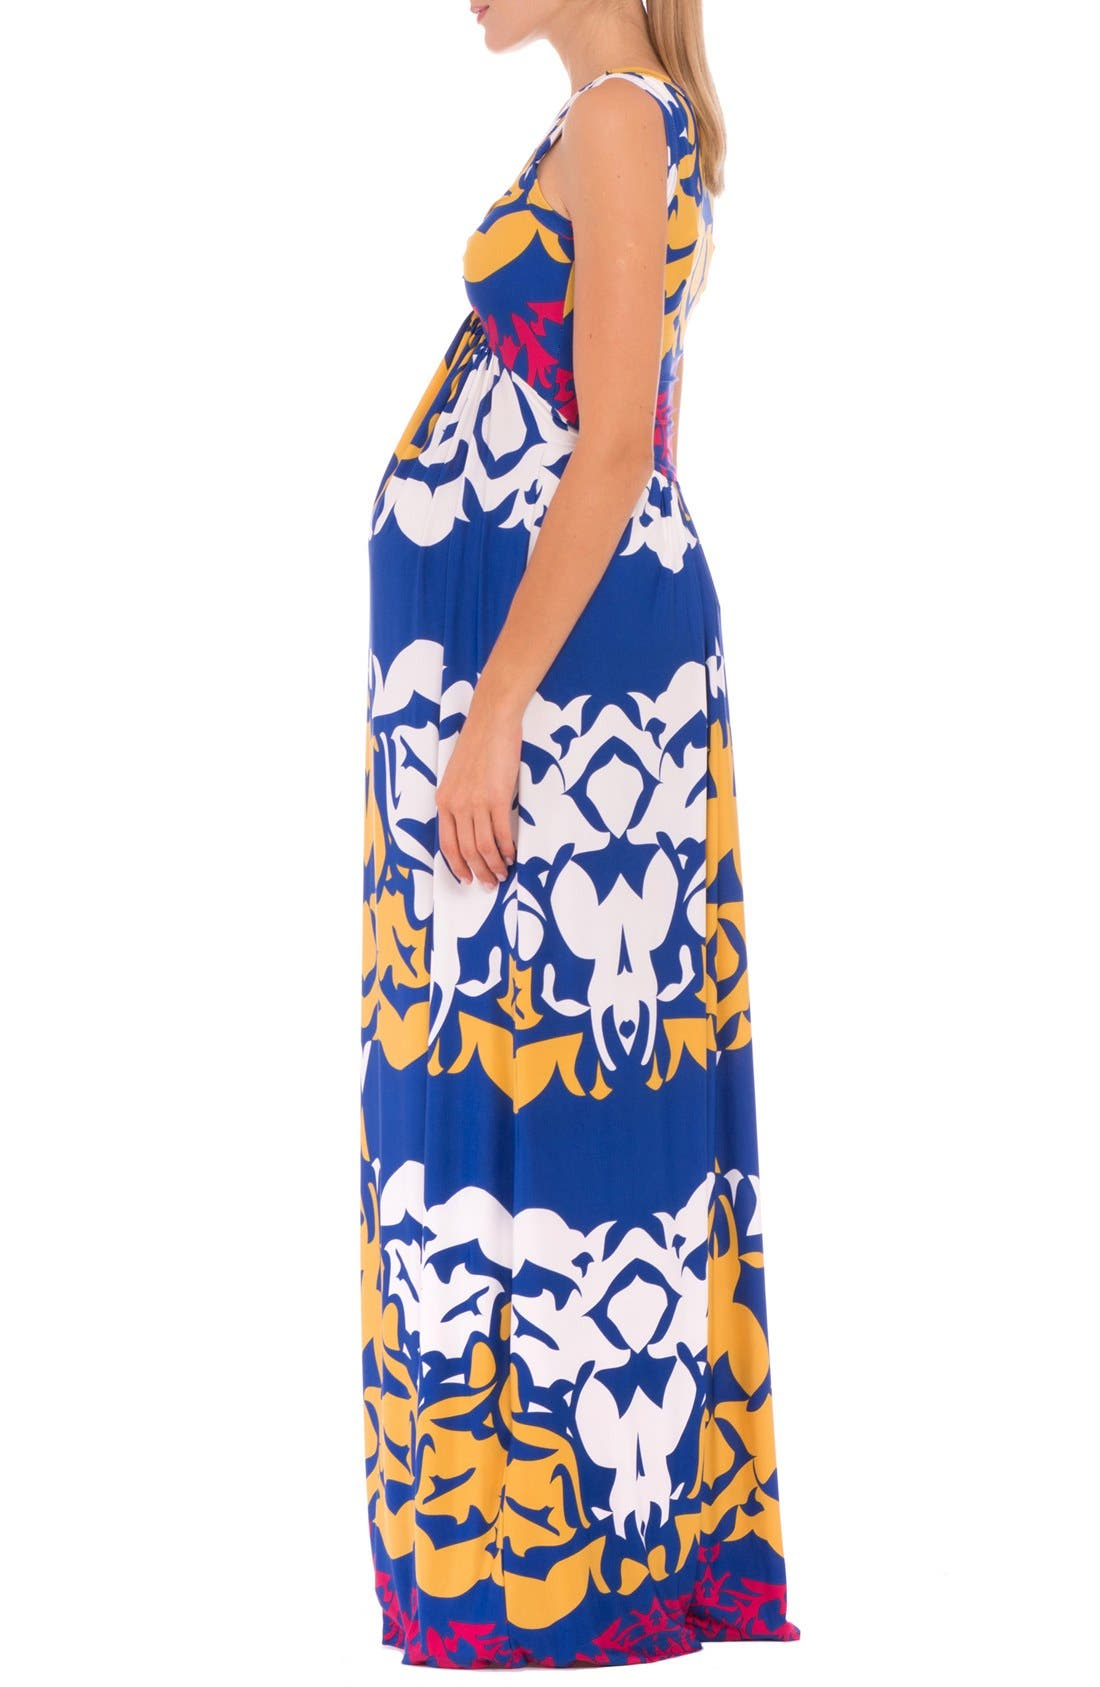 Ellie Print Maternity Maxi Dress,                             Alternate thumbnail 4, color,                             BLUE MULTI